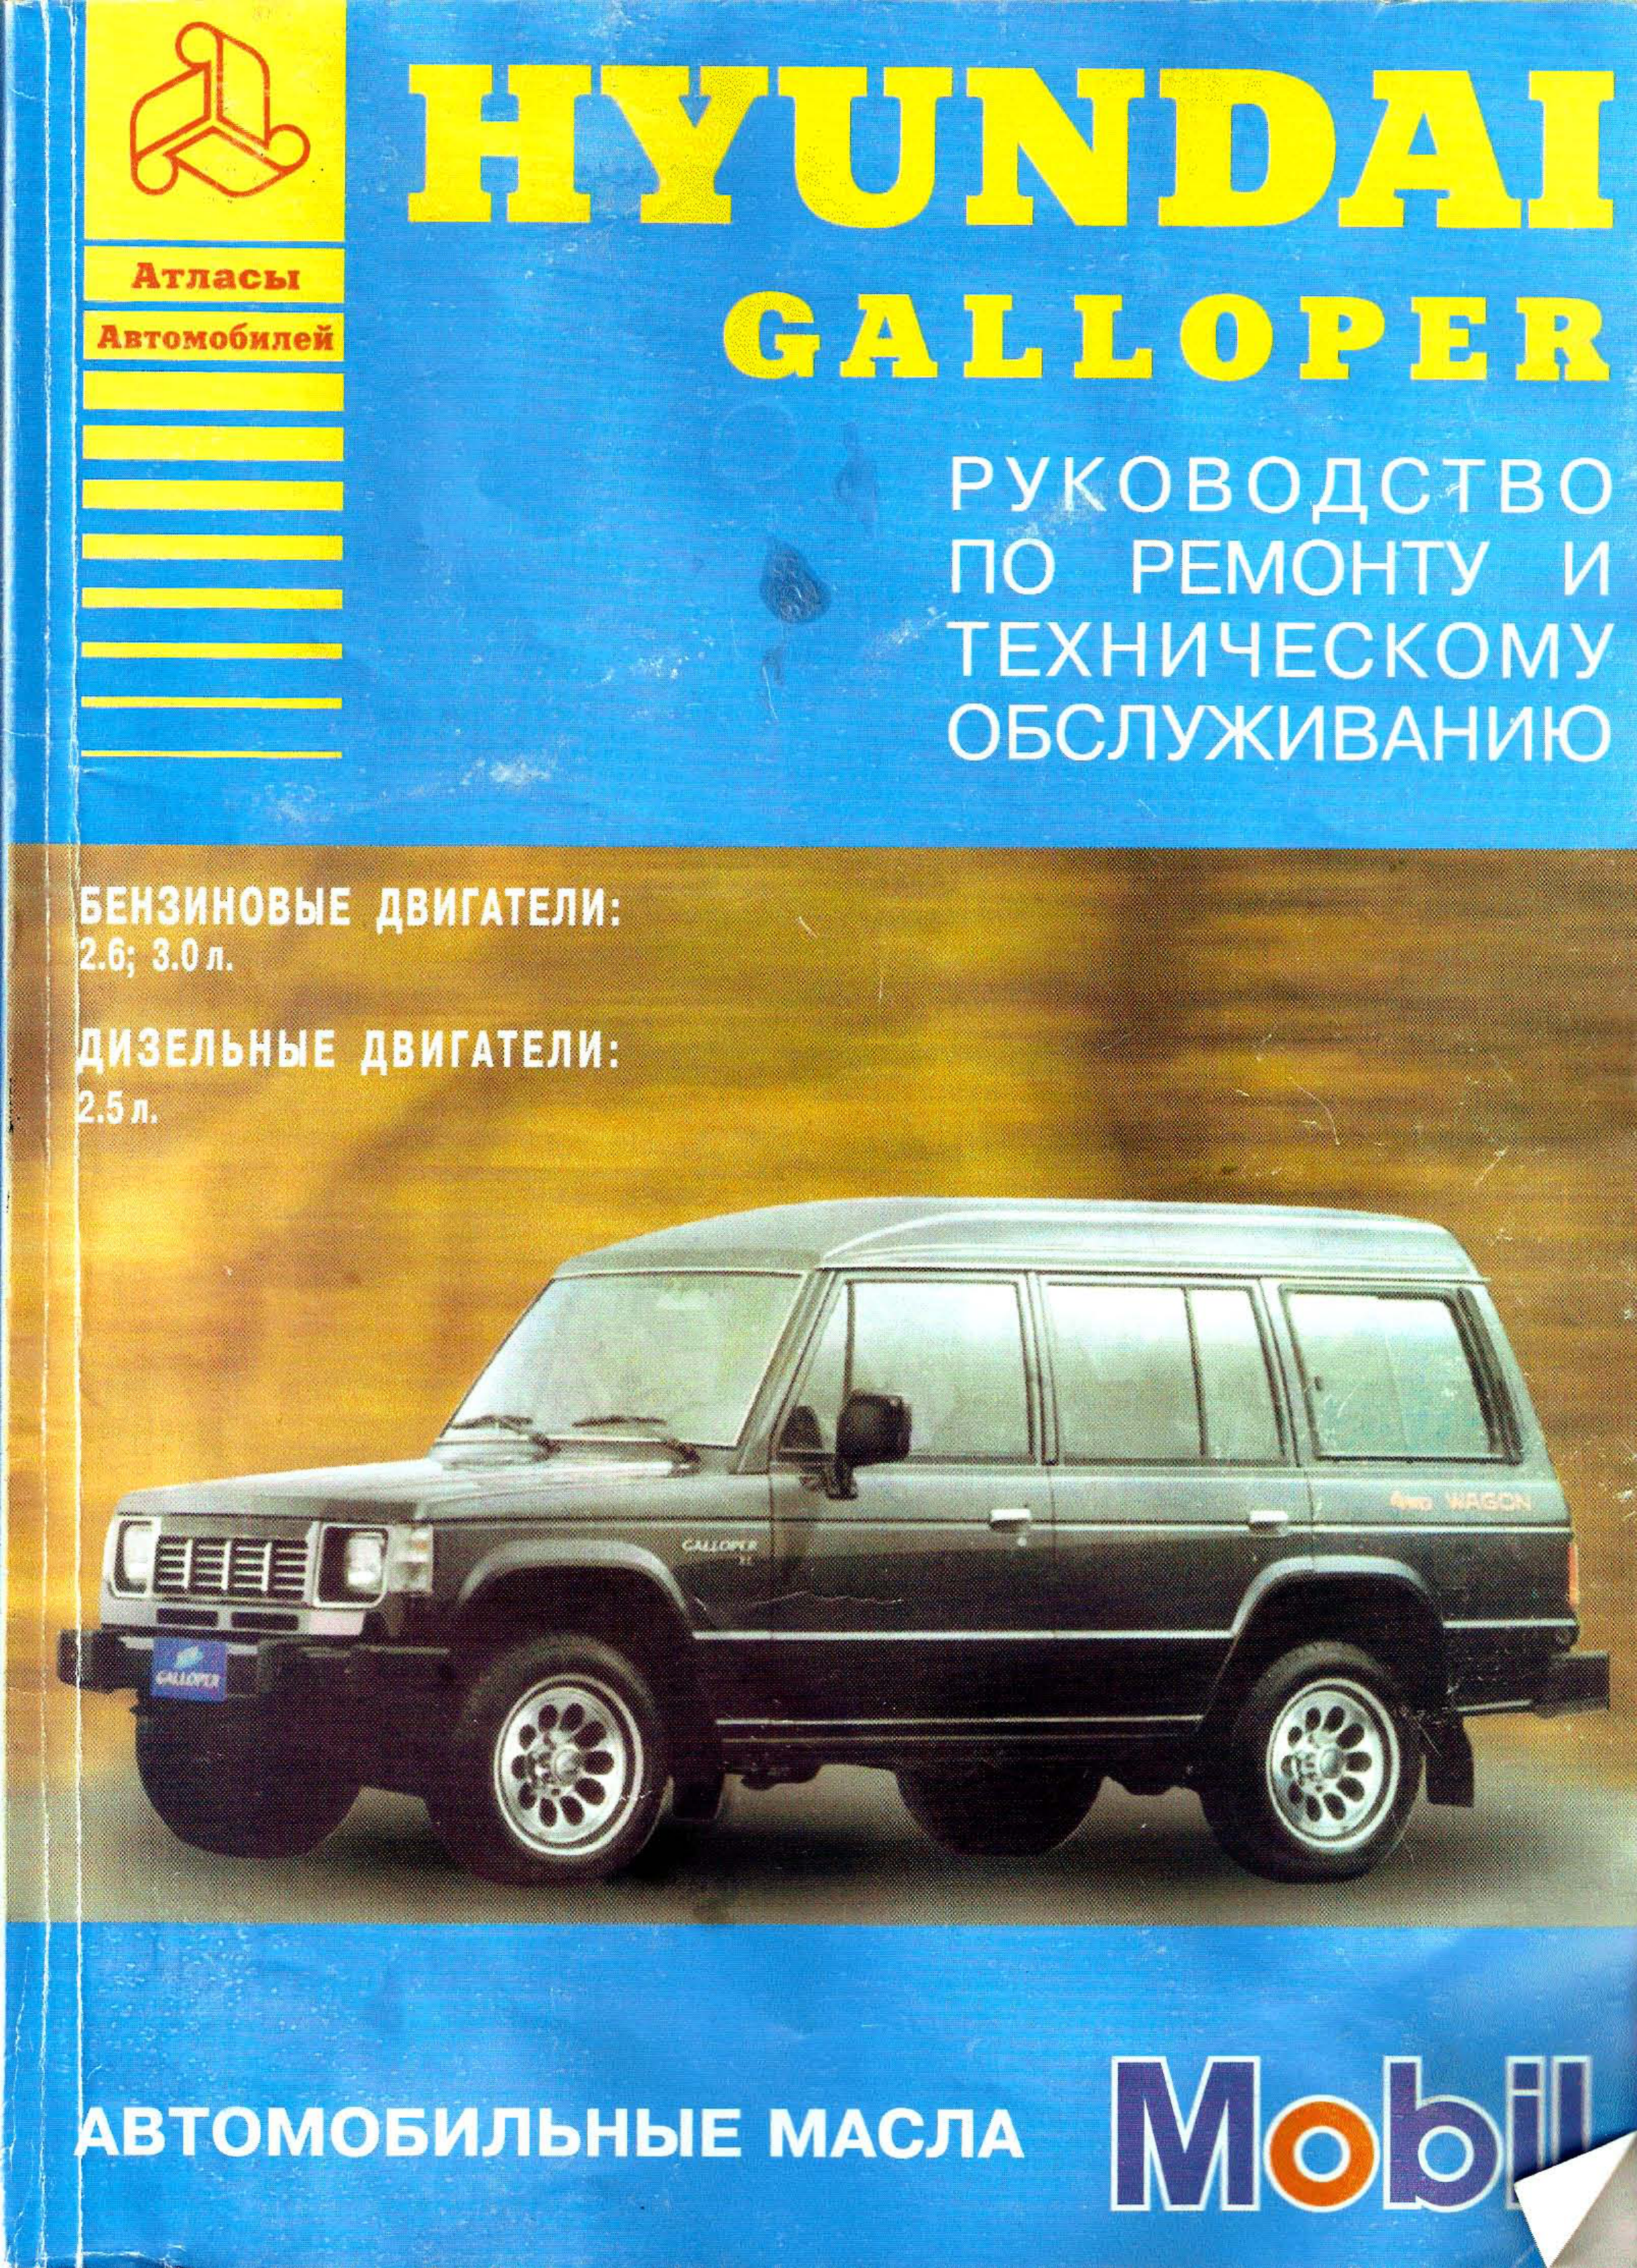 See our other Hyundai Galloper Manuals: